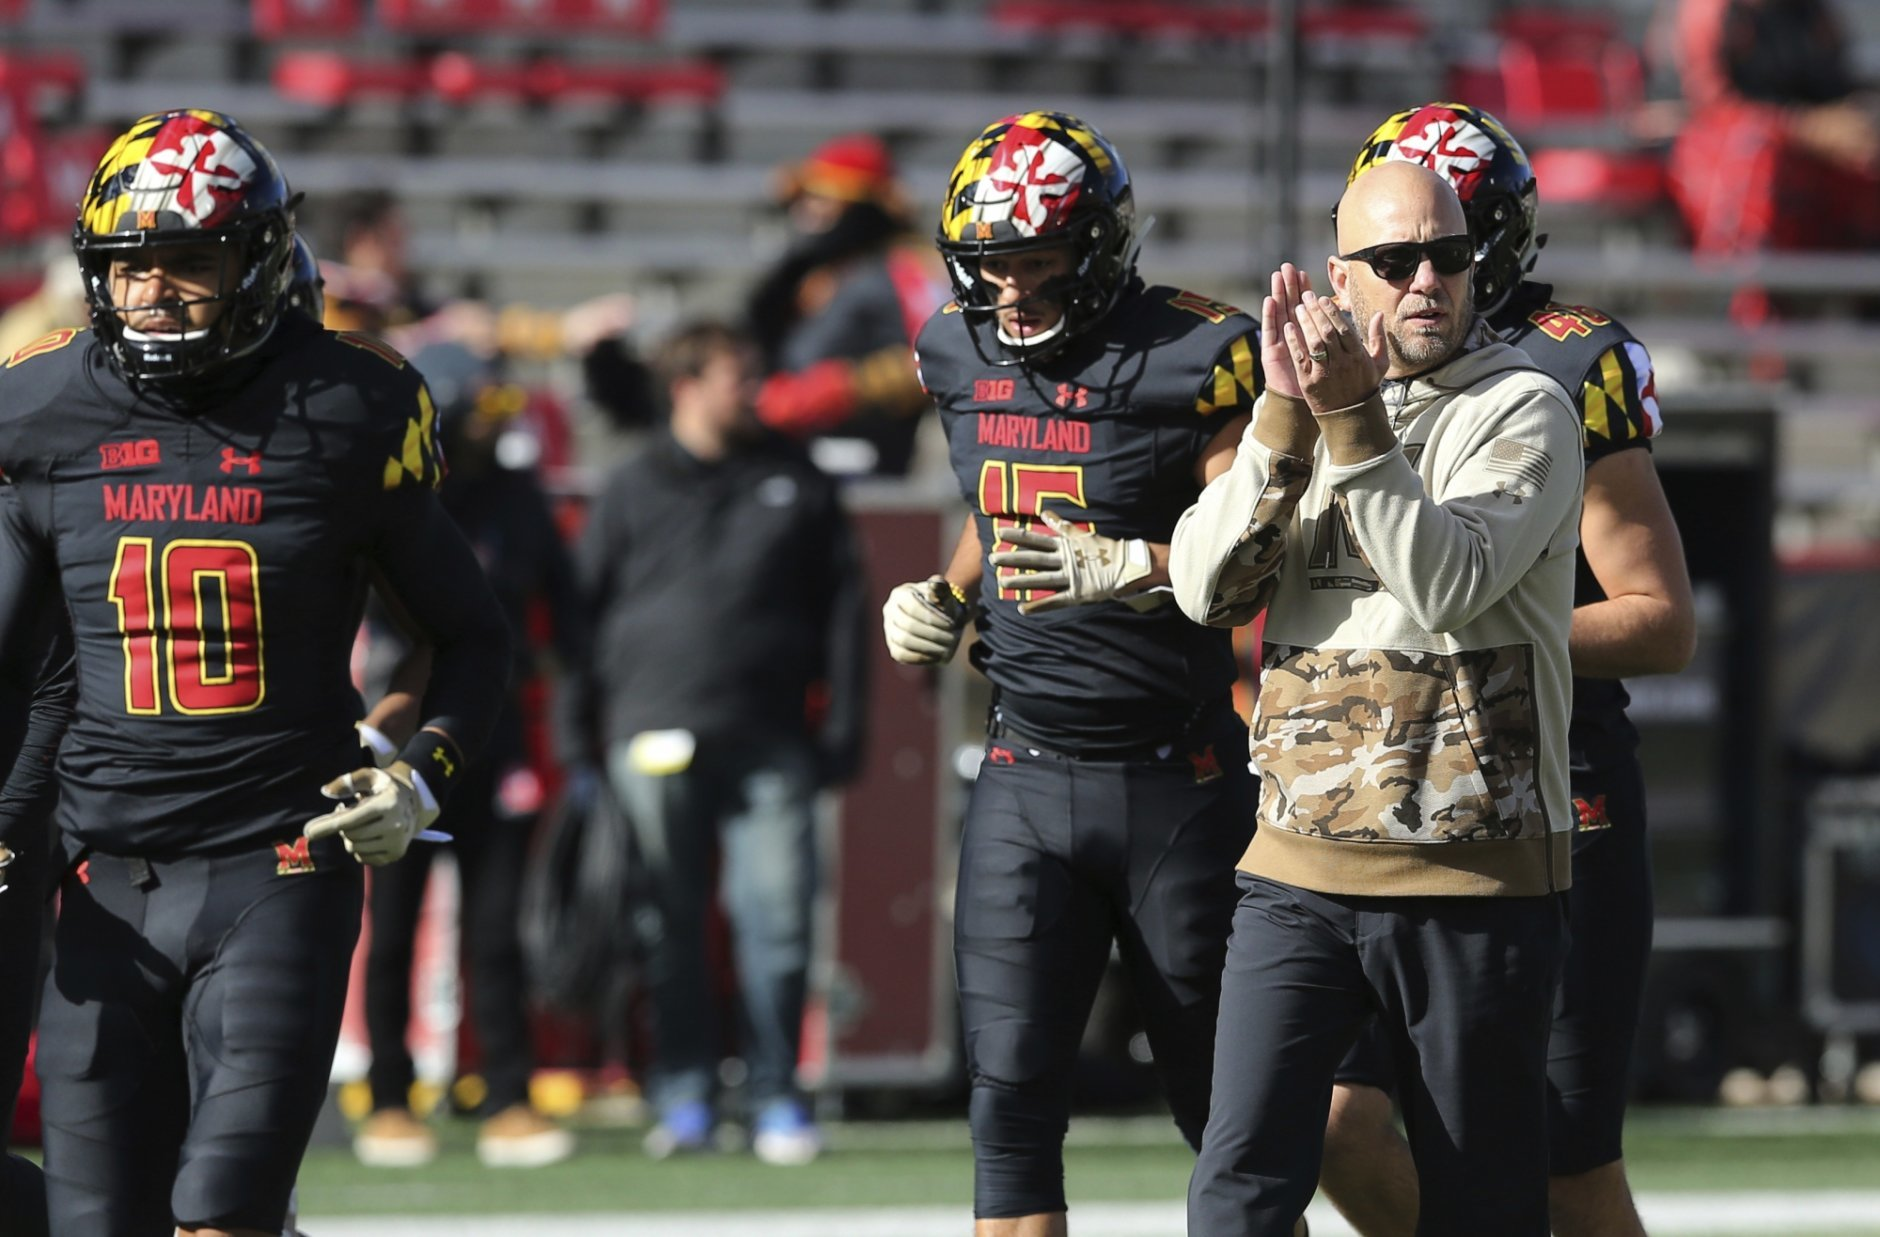 Maryland interim head coach Matt Canada, watches his team warm up before playing Michigan State in an NCAA college football game, Saturday, Nov. 3, 2018, in College Park, Md. (AP Photo/Gary Cameron)